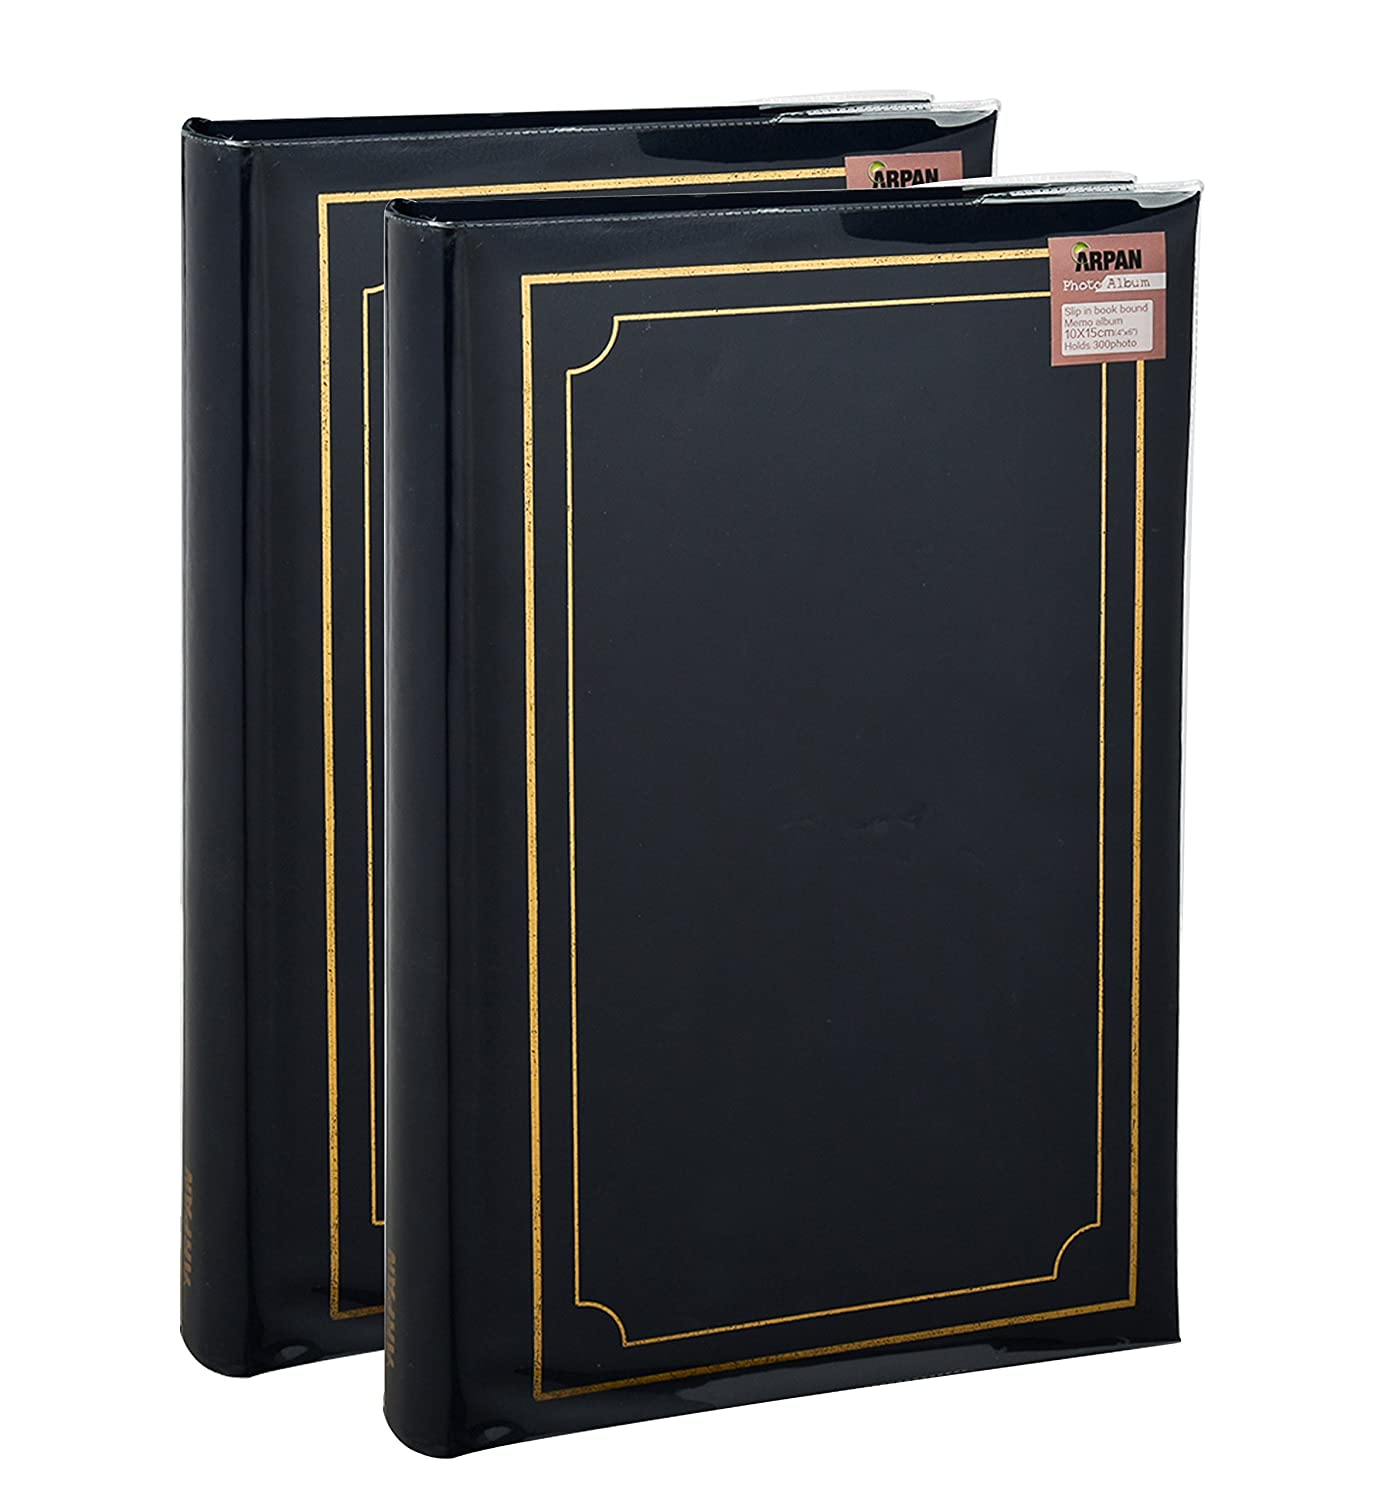 2 x Photo album Memo Slip In Case Photo Album For 300 x 4 x 6 Inch / 10x15 cm Photos by Arpan (Blue)